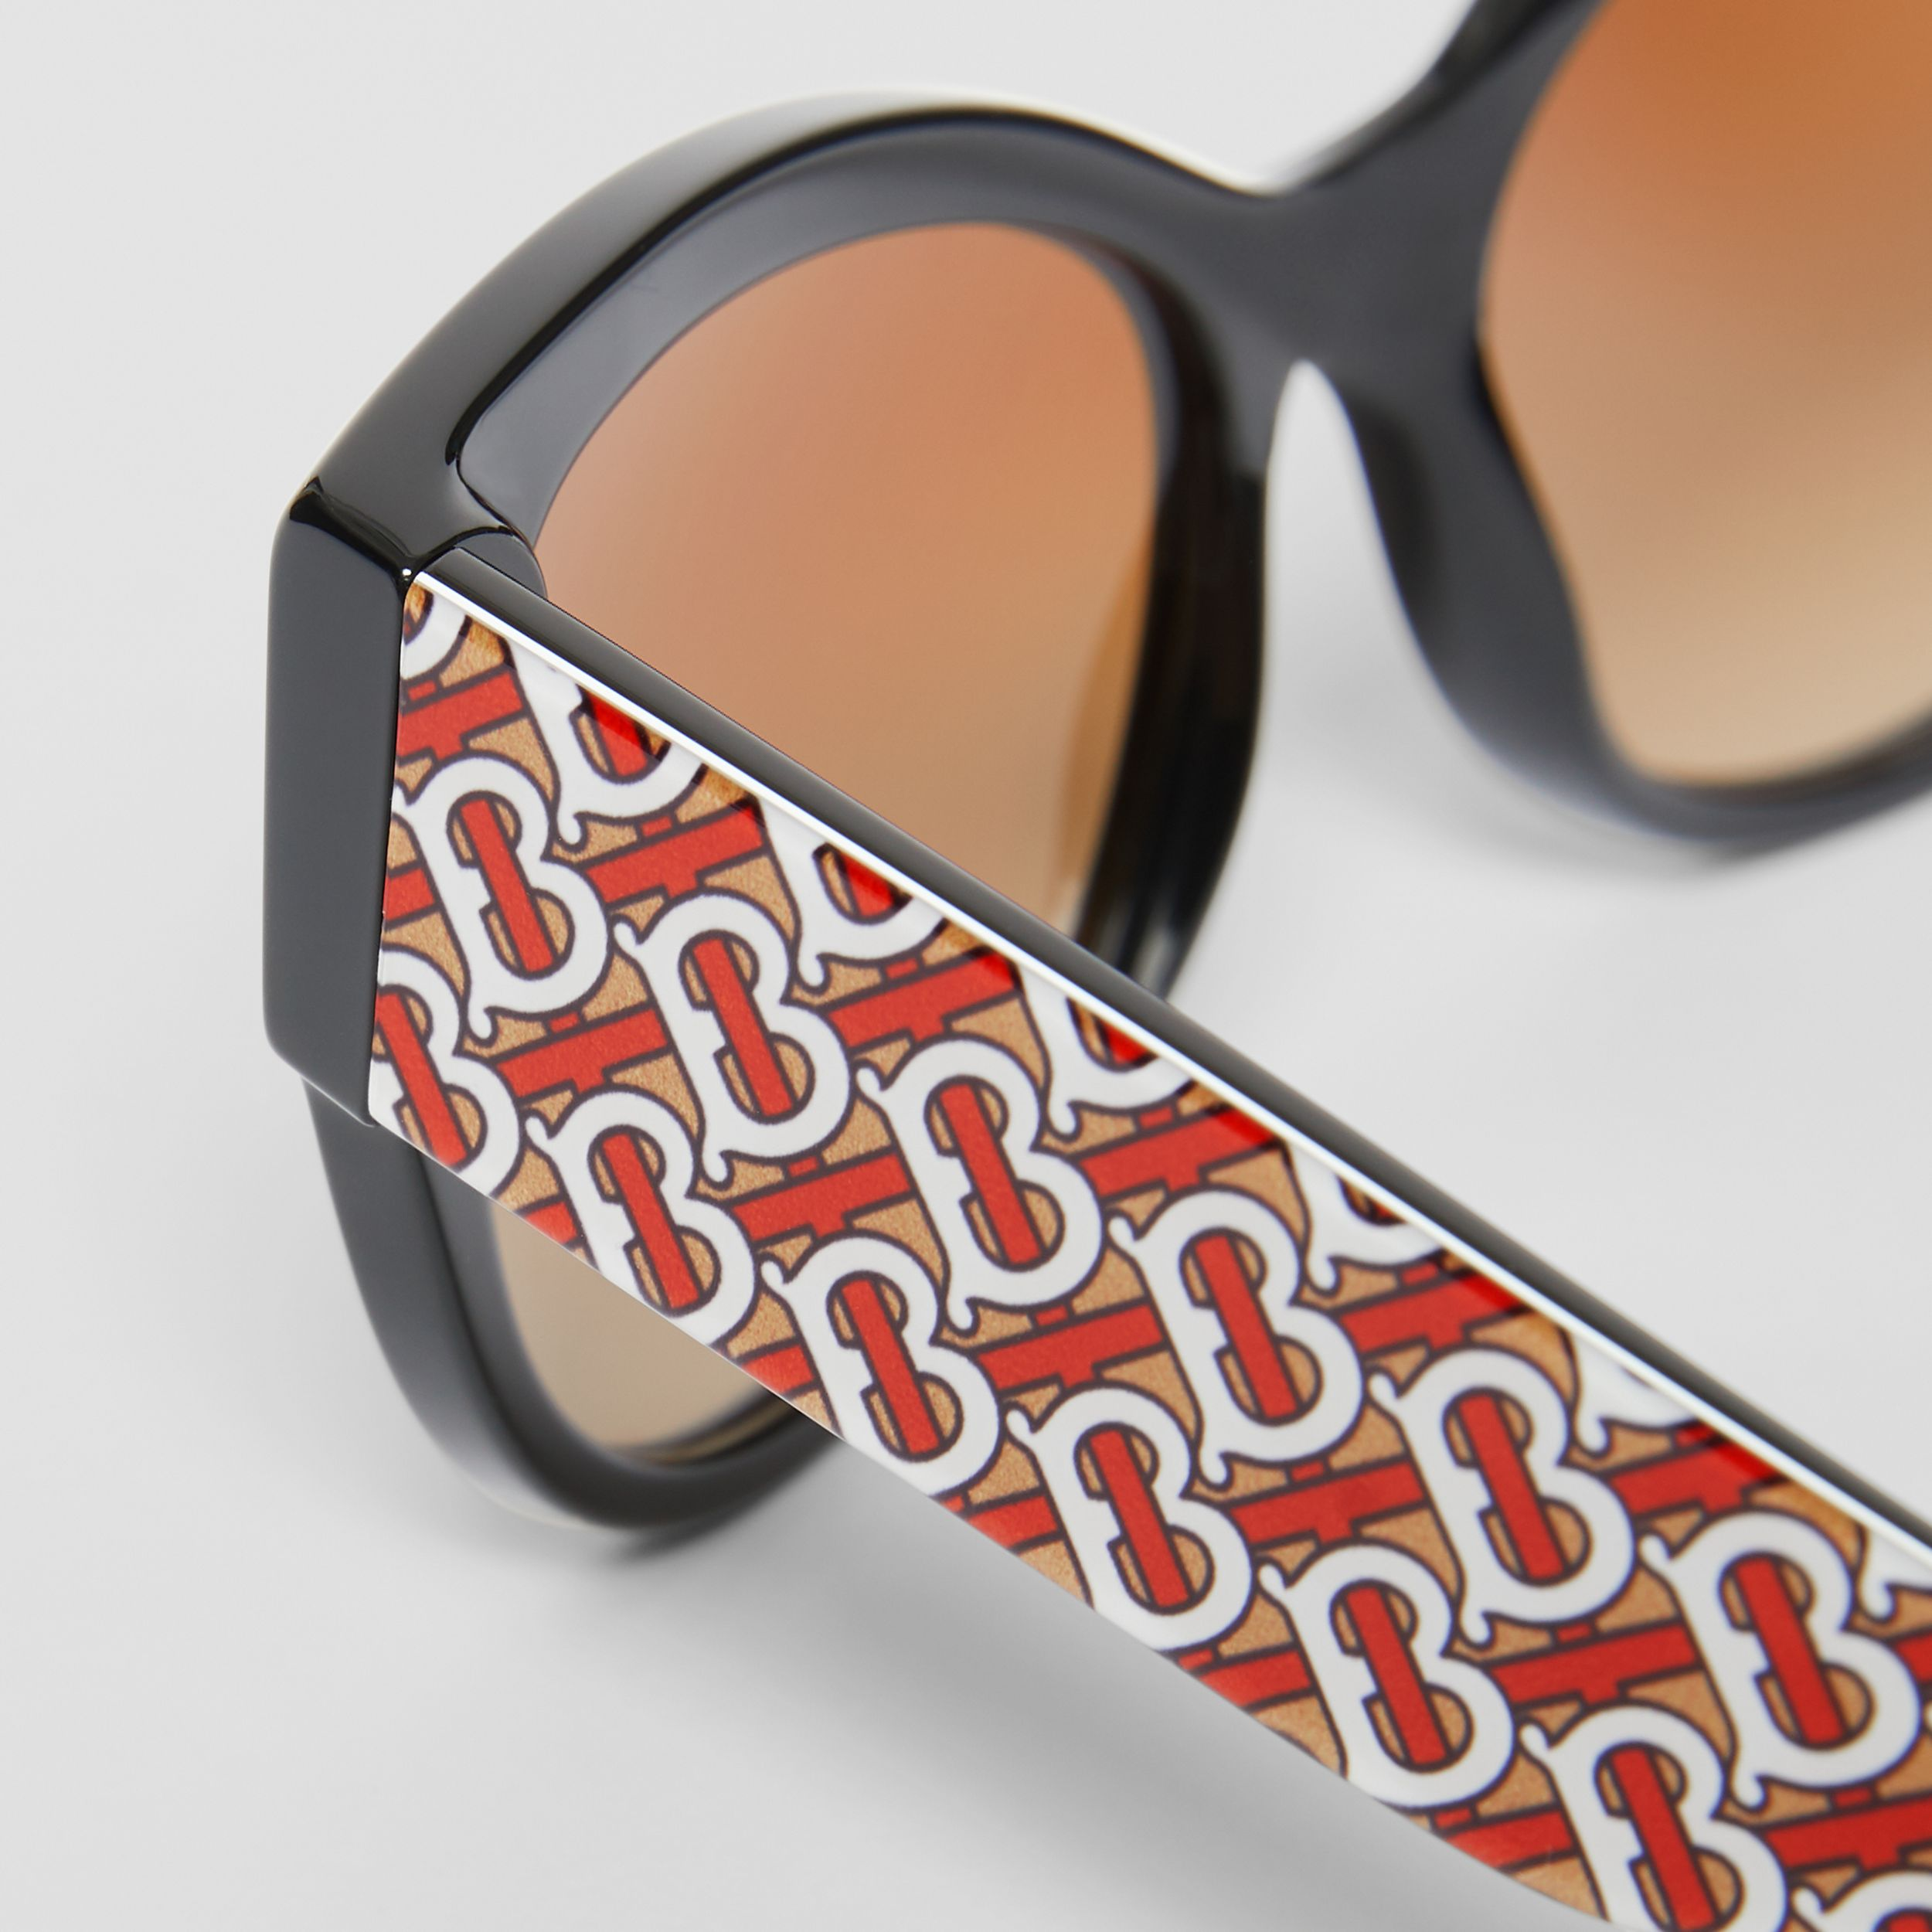 Monogram Detail Butterfly Frame Sunglasses in Black / Beige - Women | Burberry Australia - 2